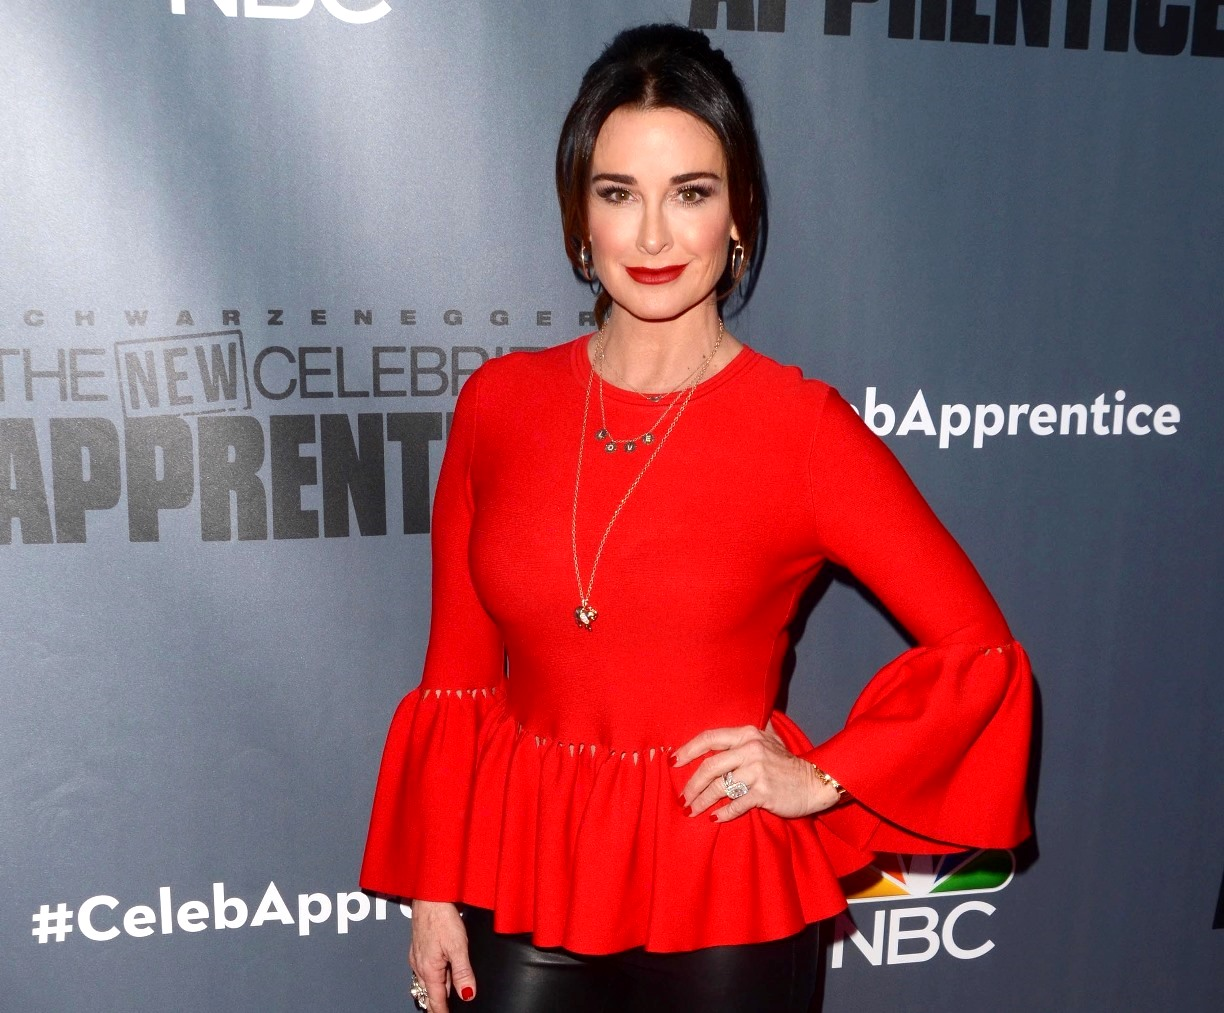 RHOBH Kyle Richards Latest News